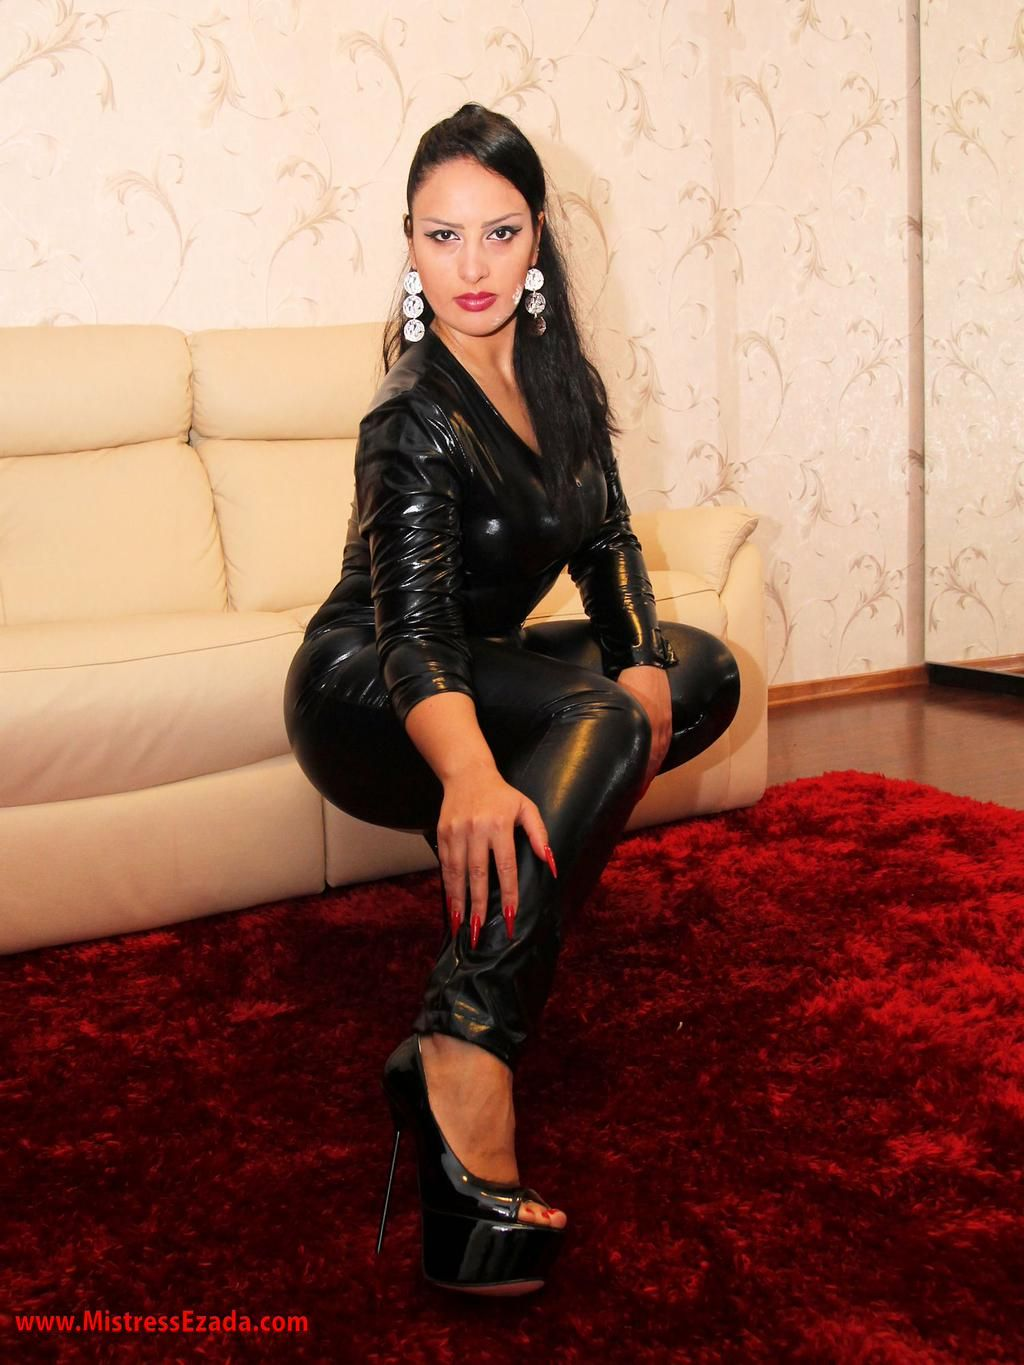 how do you feel when goddess ezada sends you an expected